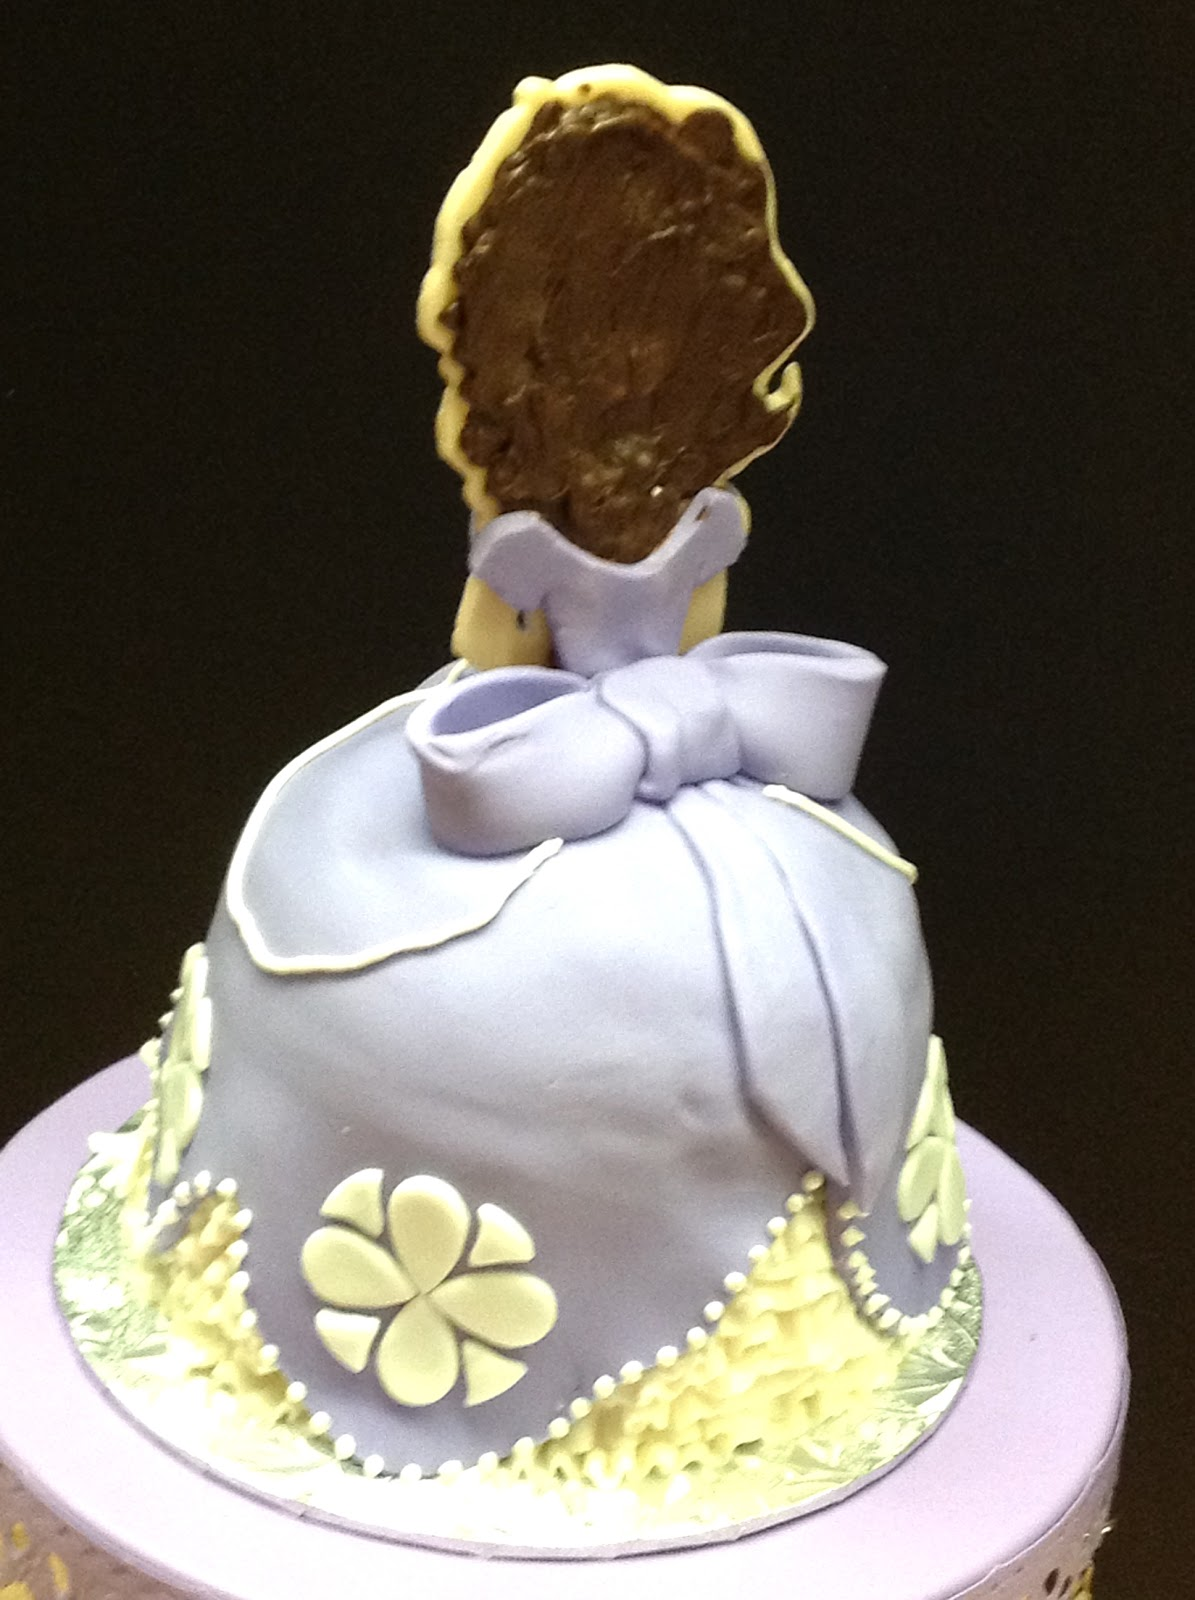 Cake Images Of Sofia The First : Plumeria Cake Studio: Sofia the First Cake and Cupcakes